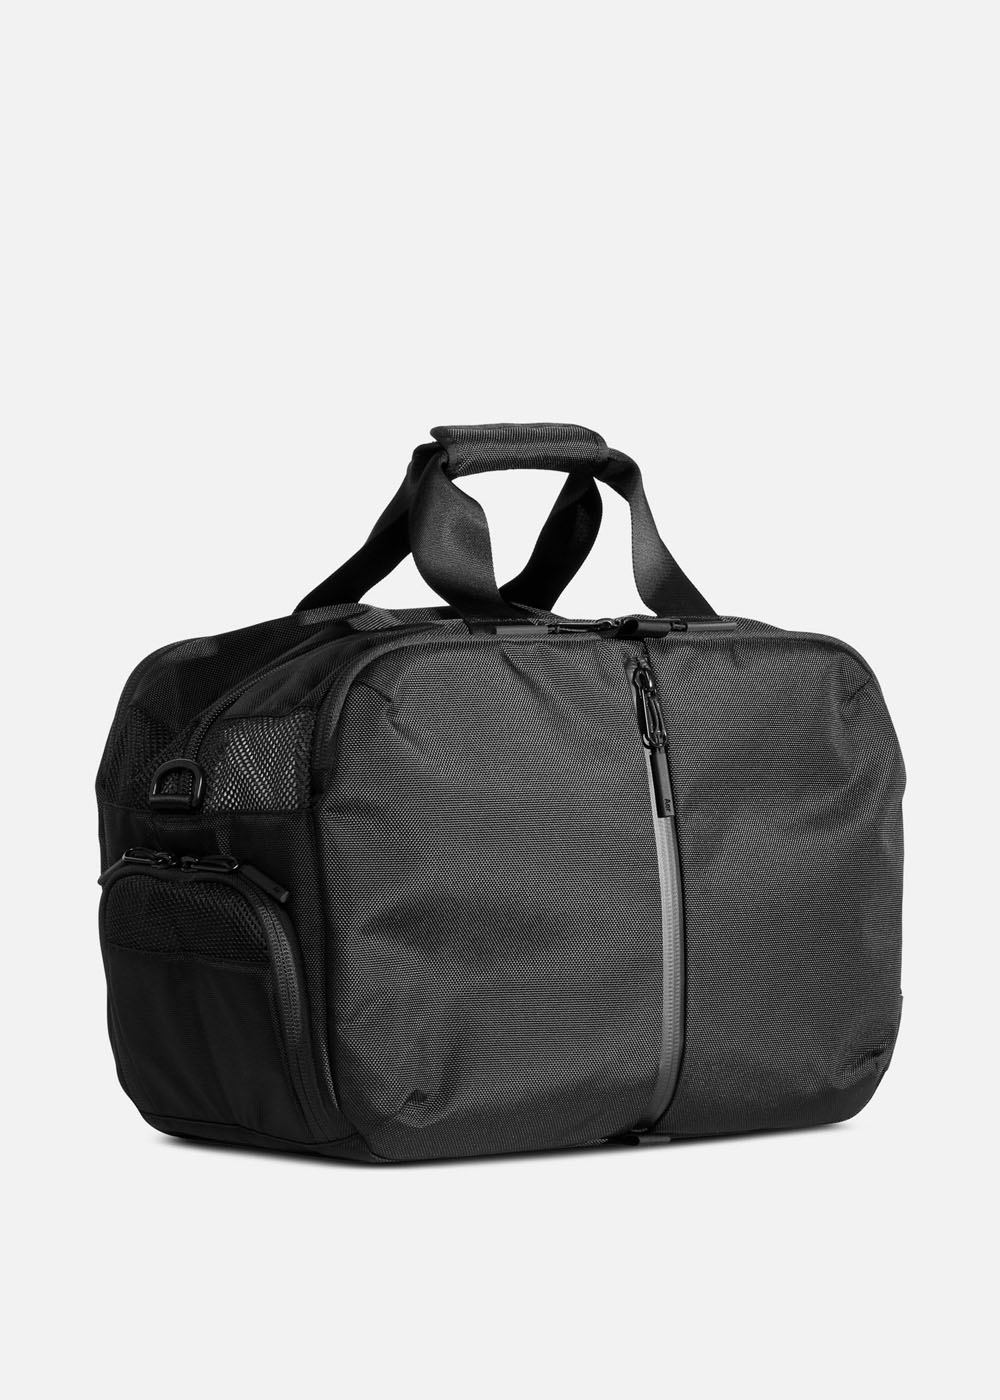 active_aer_gym_duffel_2_black.JPG